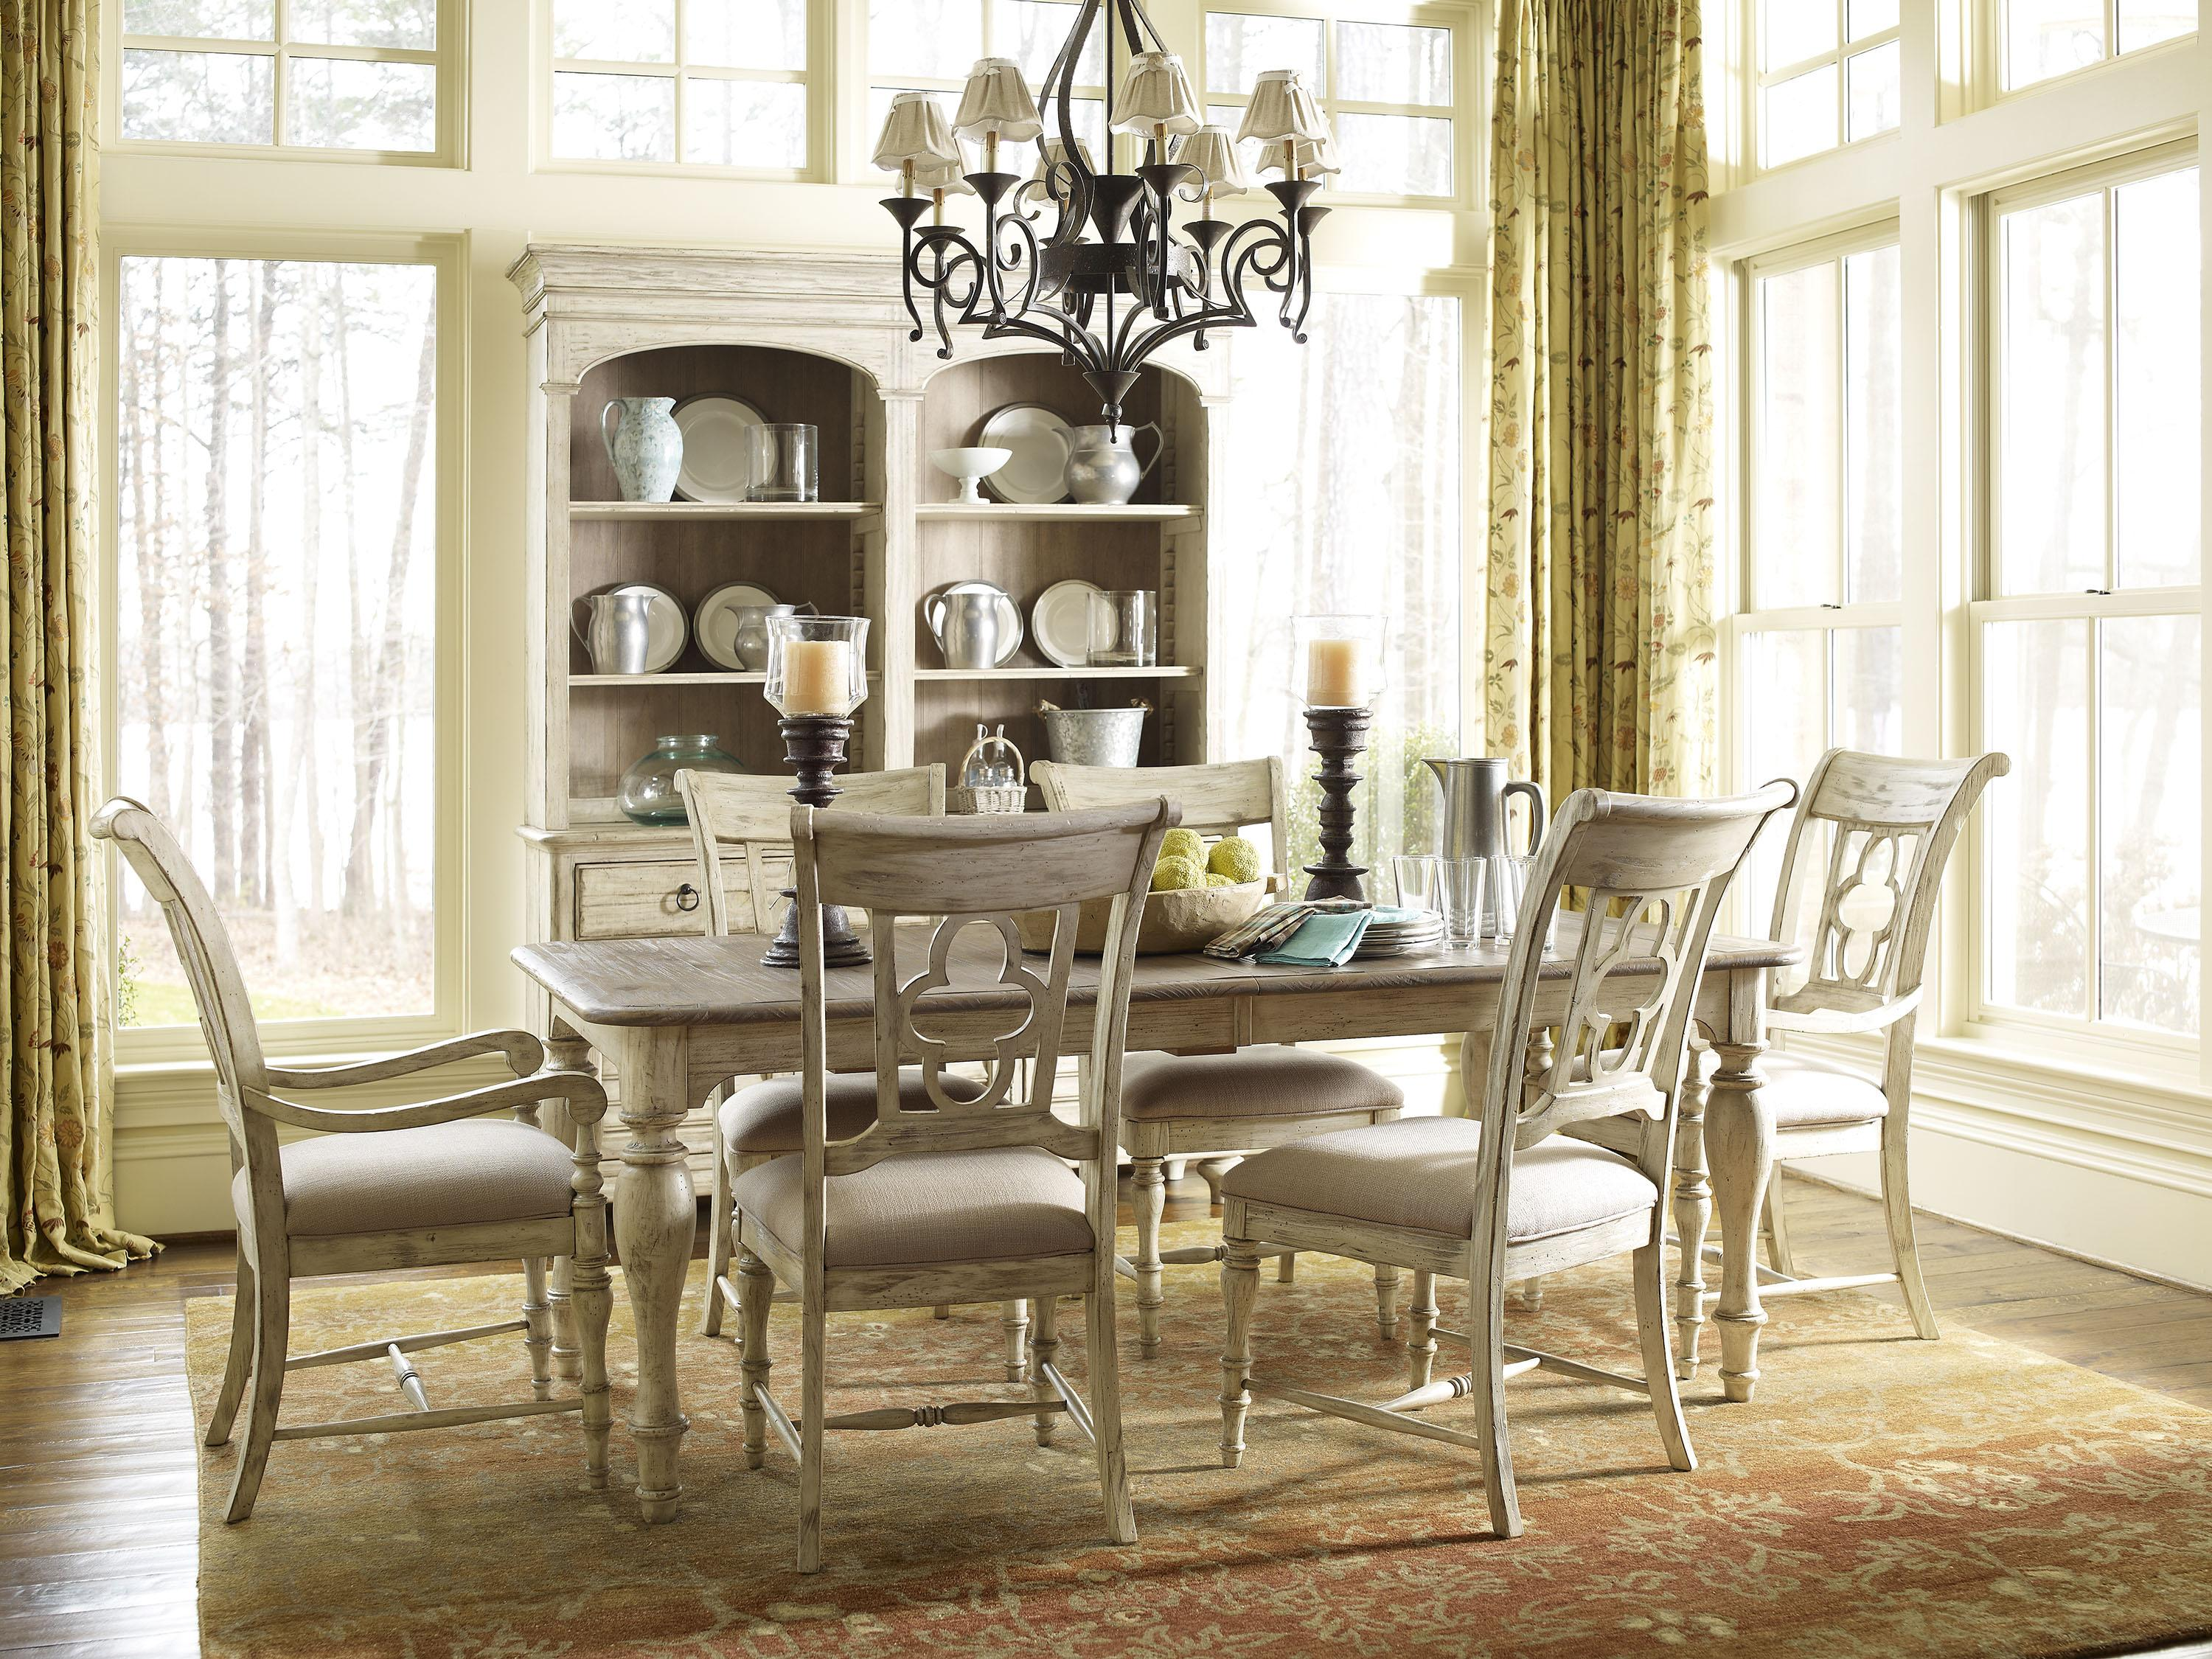 Kincaid Furniture Weatherford Dining Room Group 1 - Item Number: 75 Dining Room Group 1